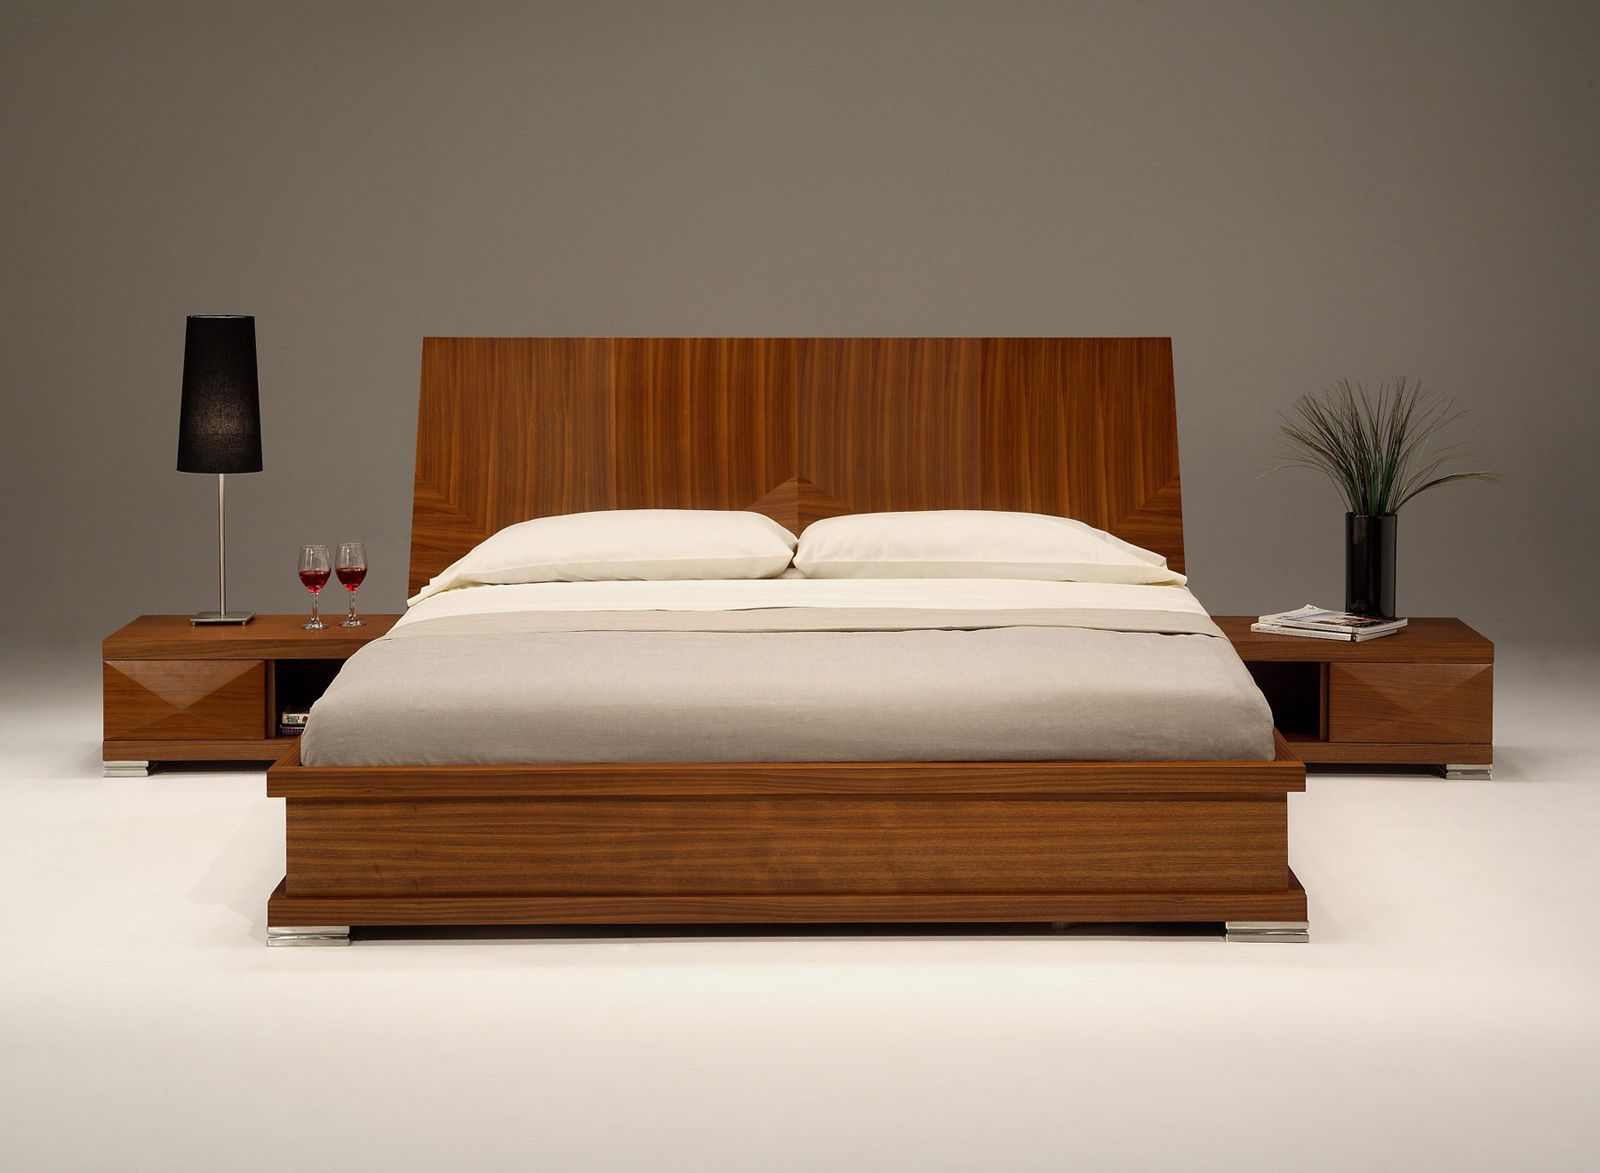 Bedroom design tips with modern bedroom furniture for Contemporary furnishings